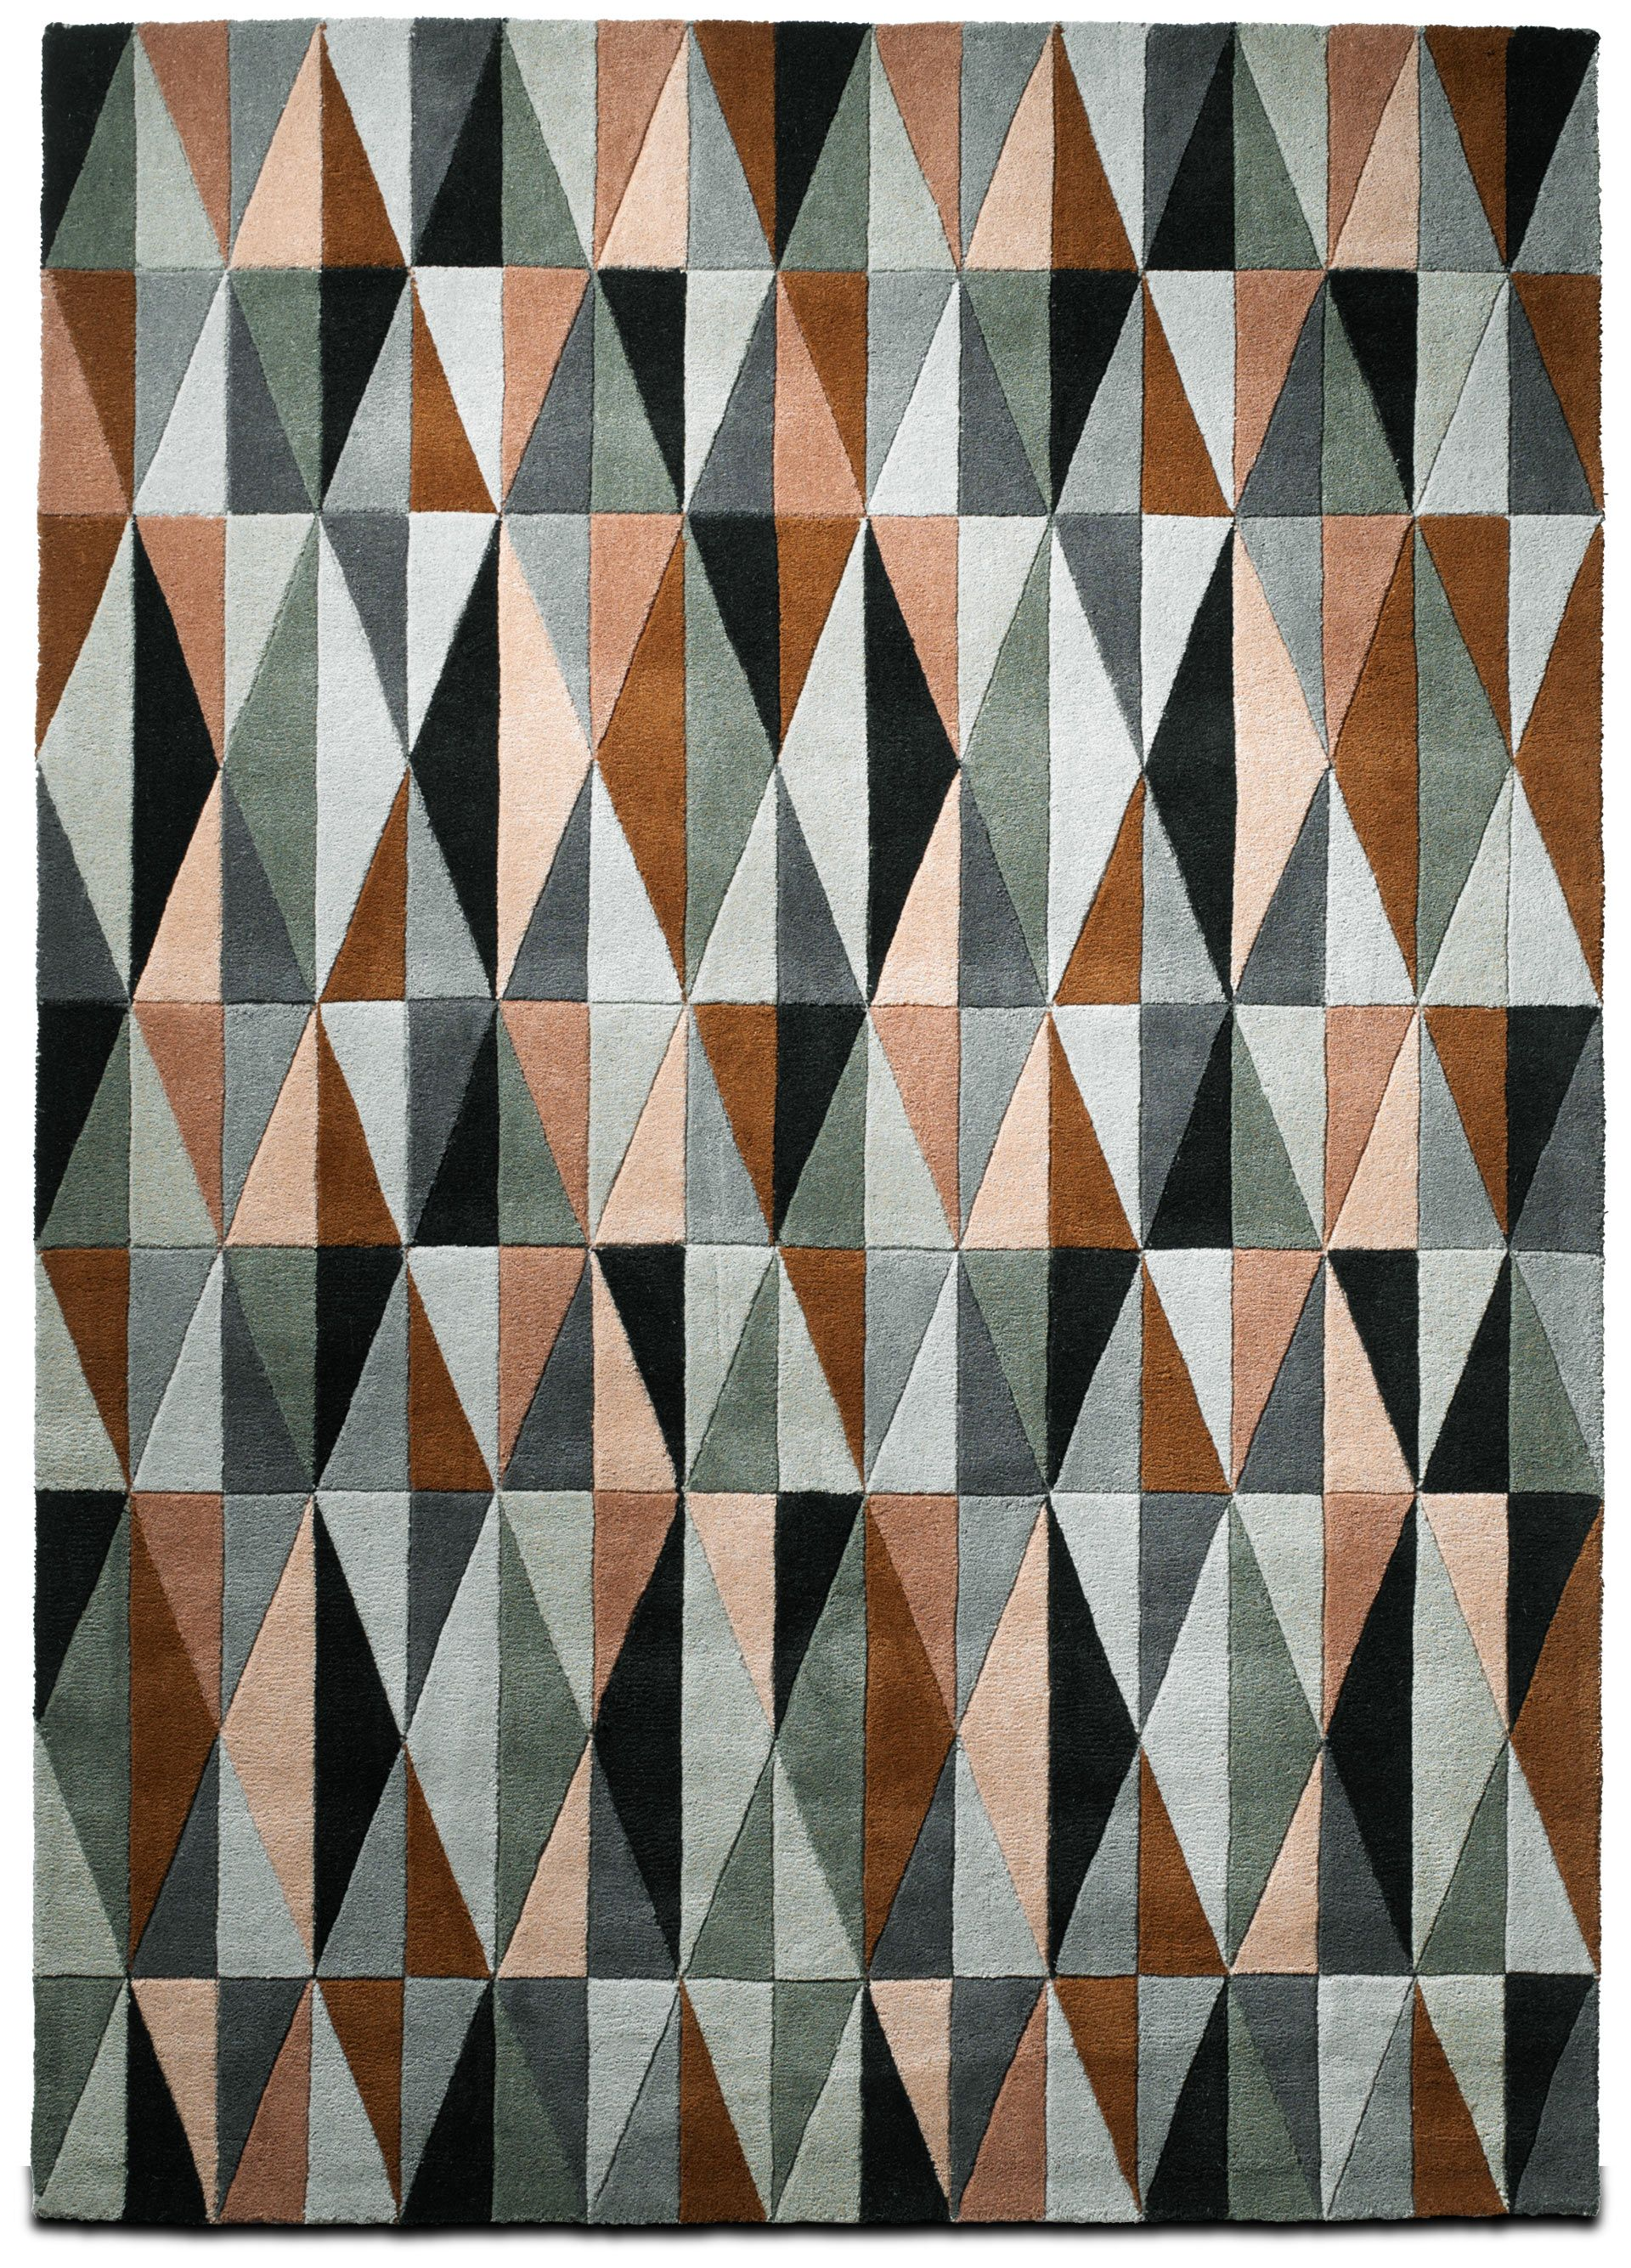 Alfombras Modernas Contemporary Low Pile And Tufted Rugs - Quality From